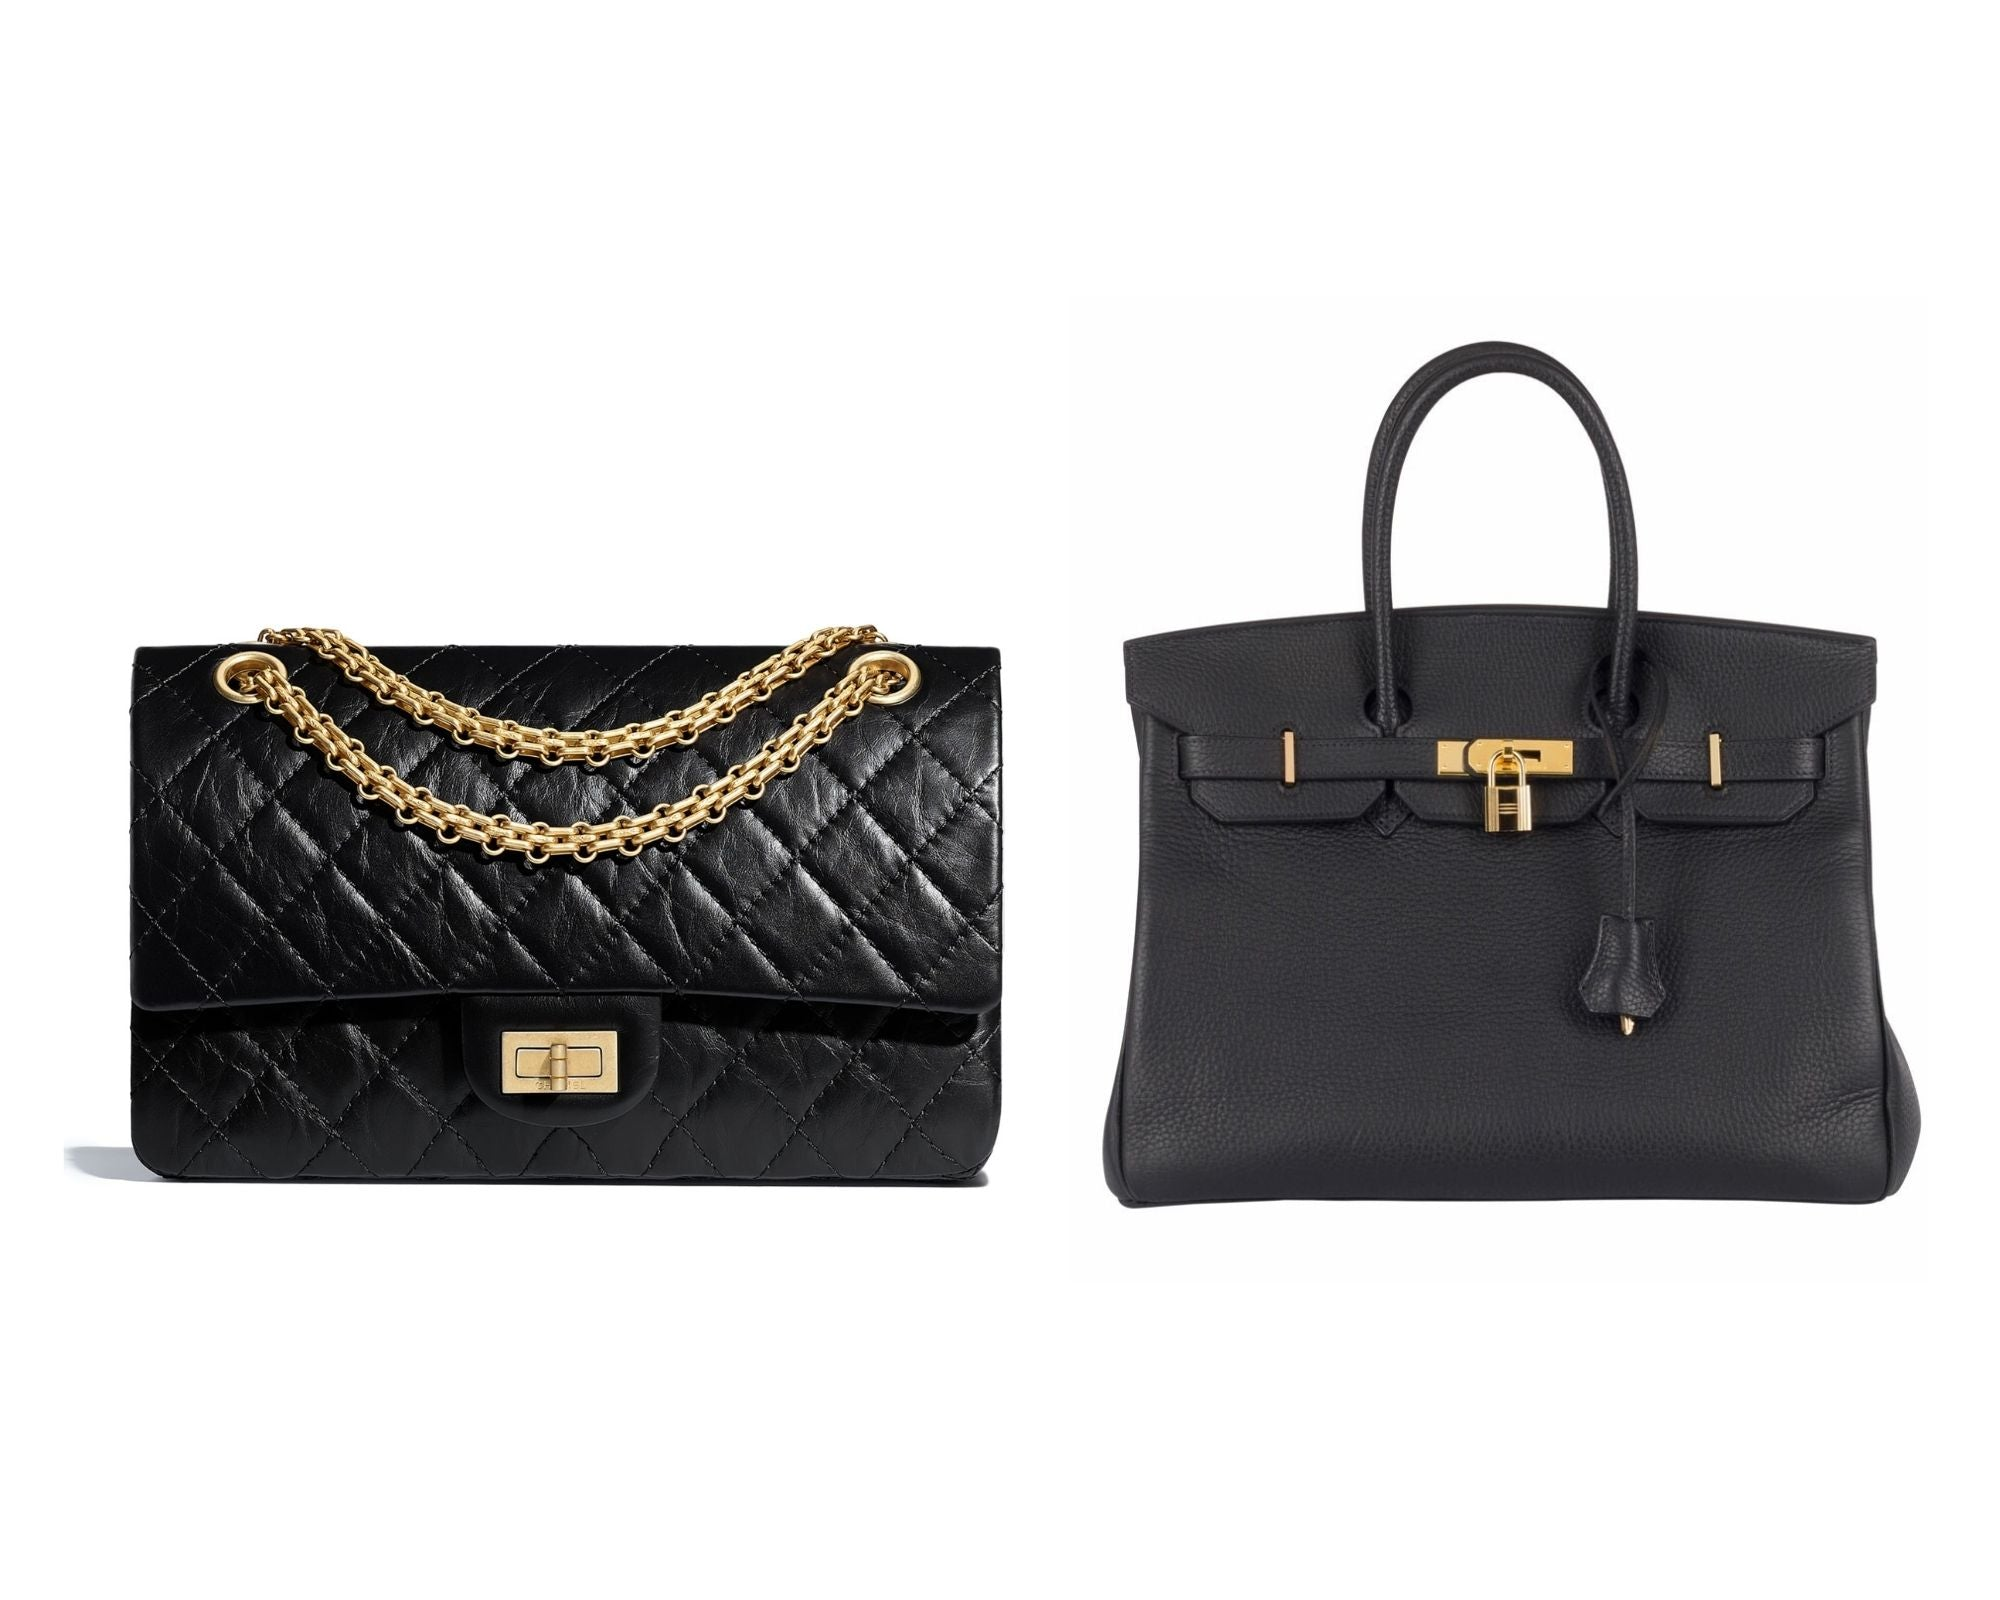 Chanel Increases Prices Worldwide for the Second Time in July 2021 chanel prices vs hermes prices